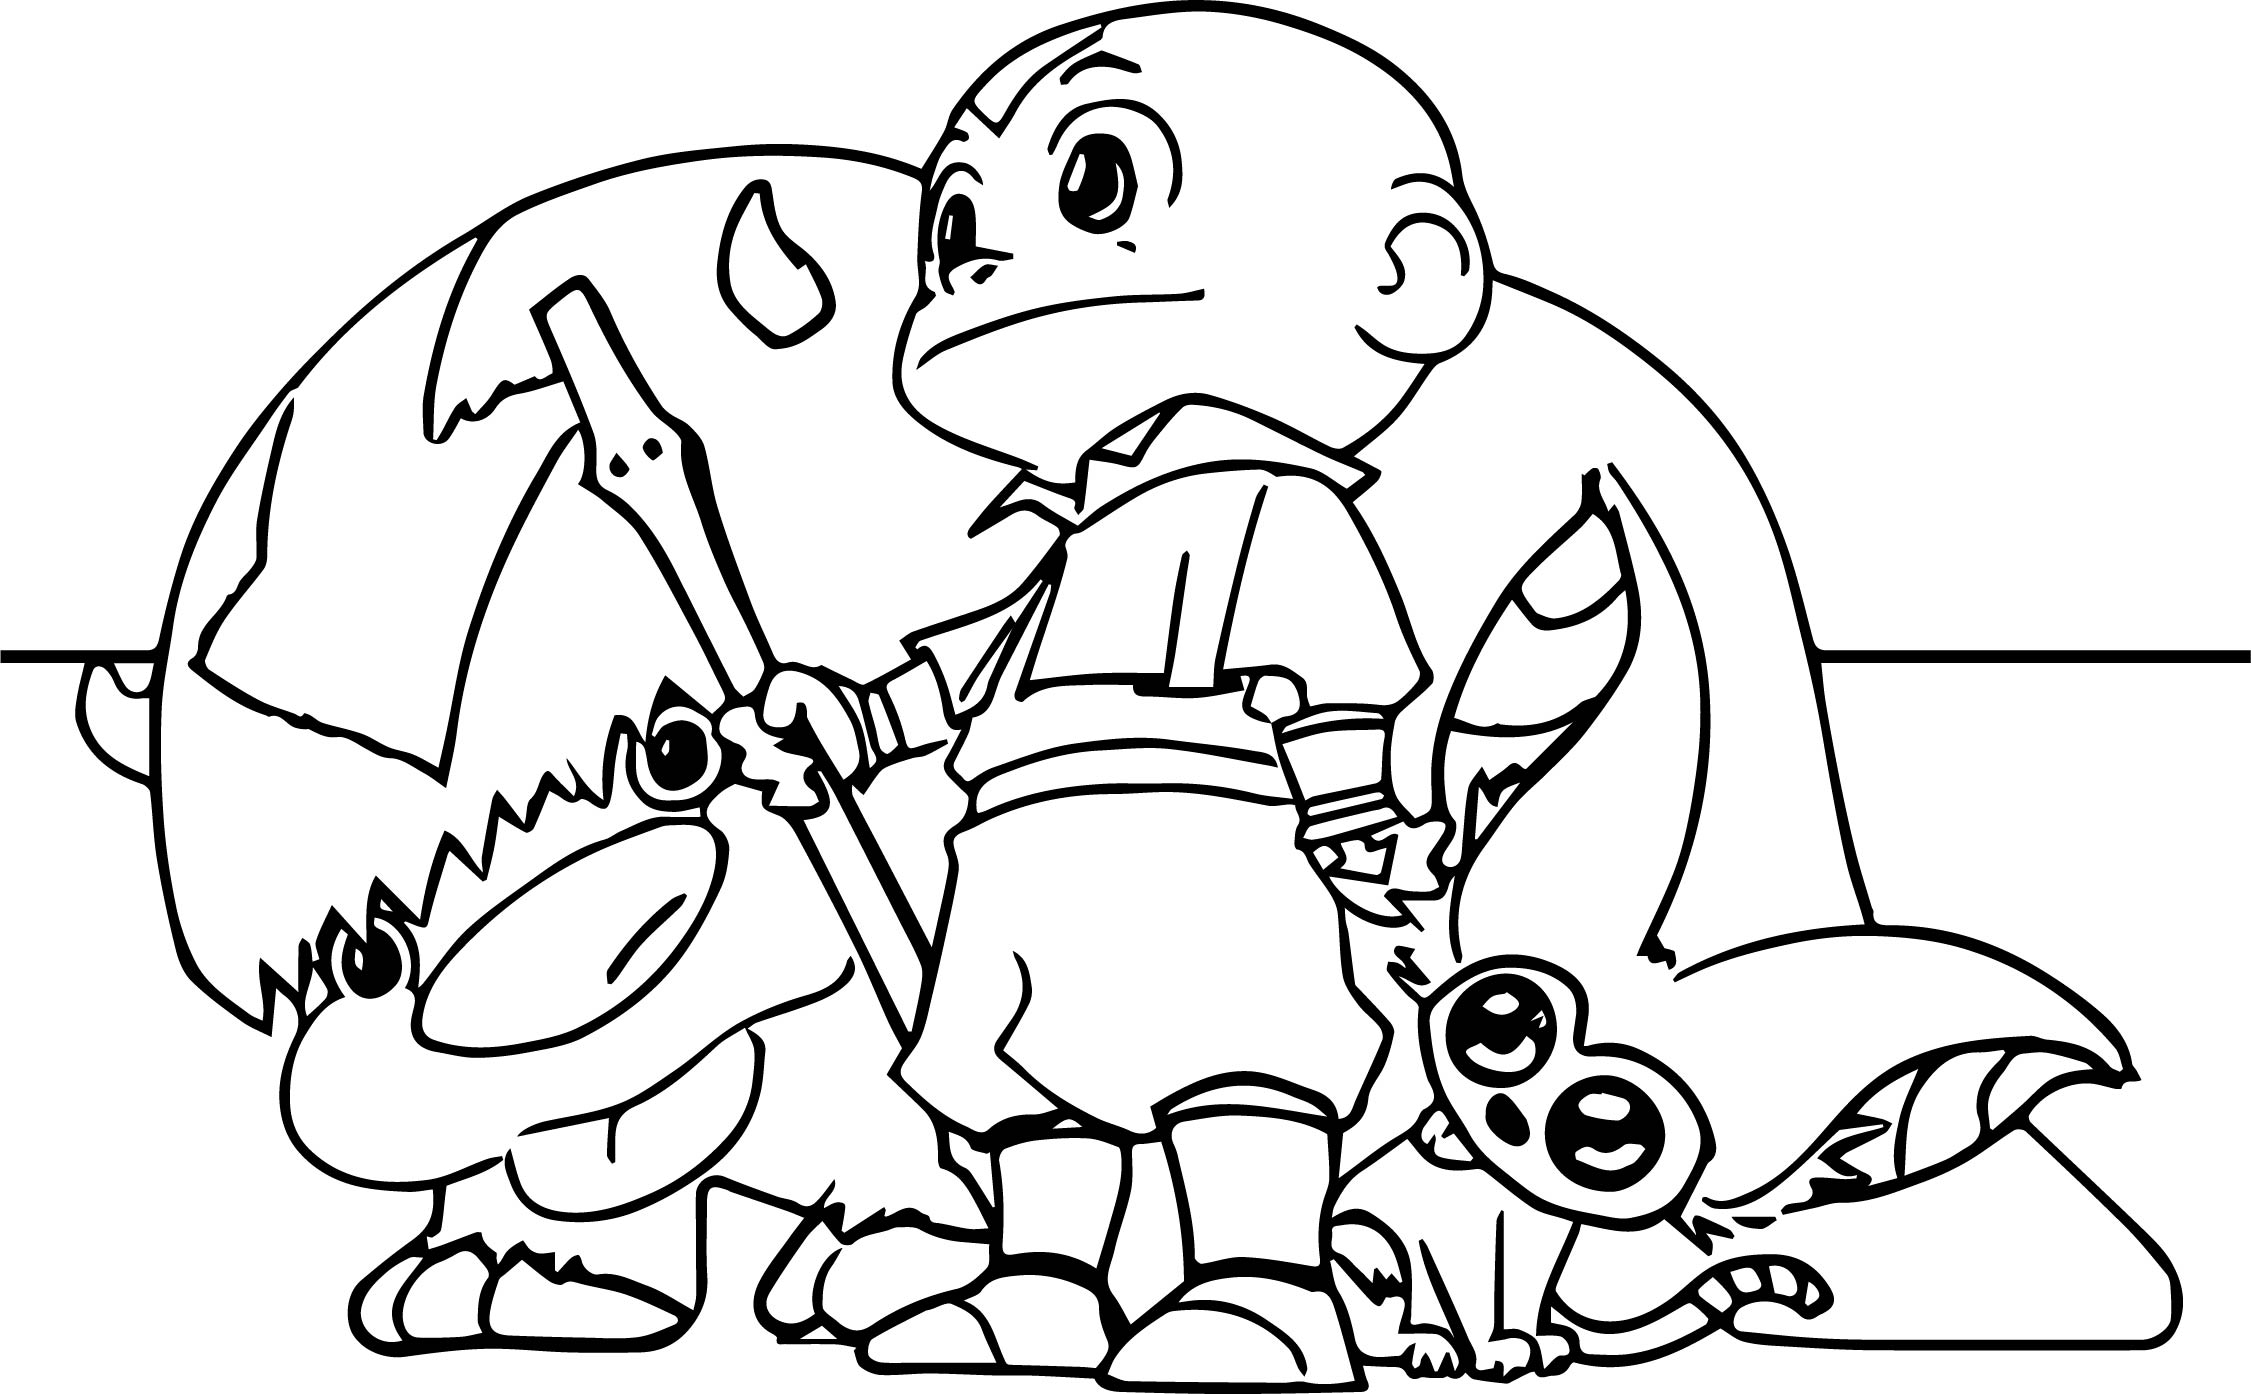 Aang appa momo bryan avatar coloring page for Avatar coloring pages